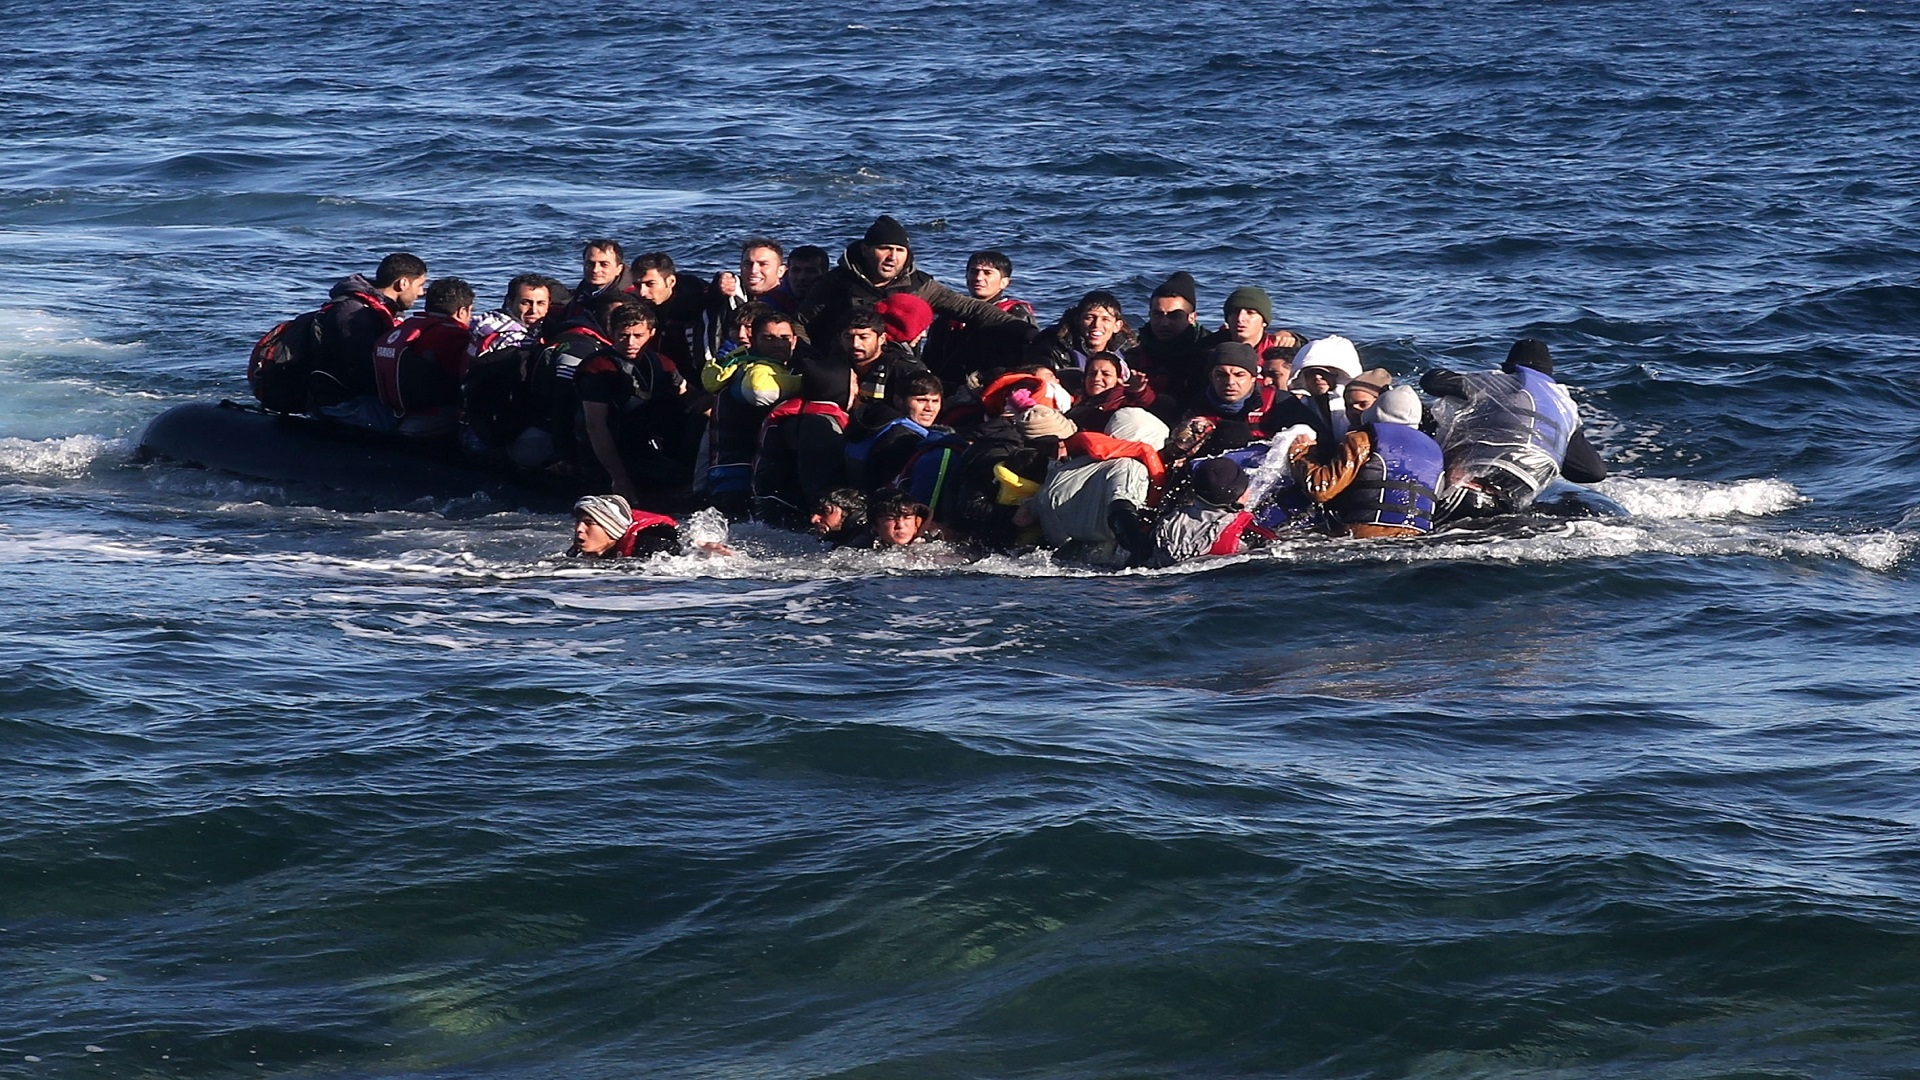 UN report on asylum seekers' drowning commendable, similar investigation should be opened into 2014 incident